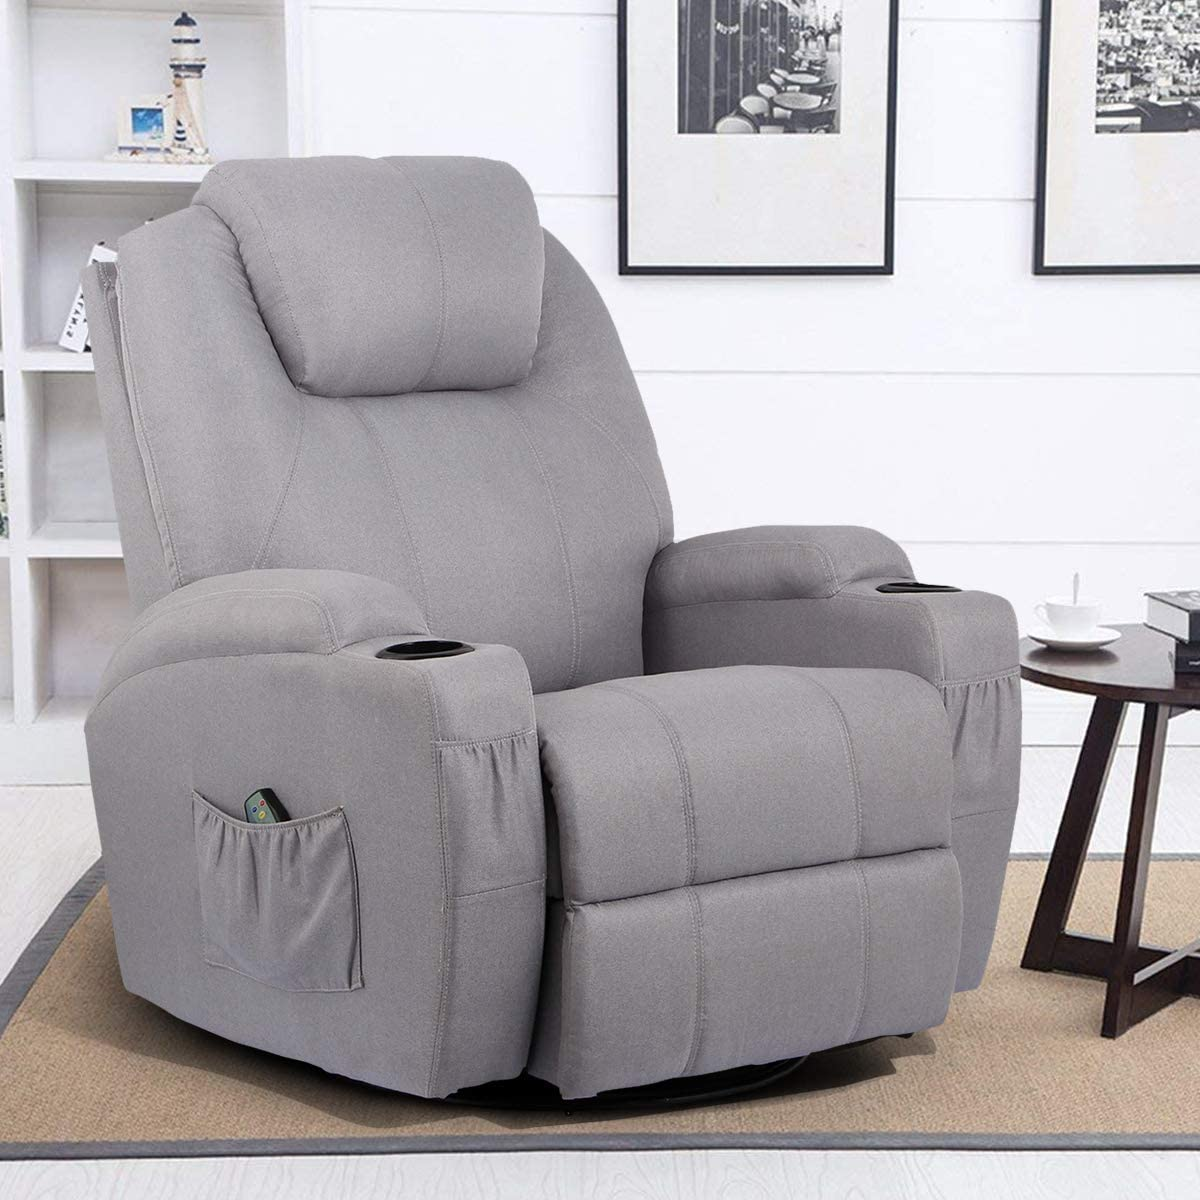 Esright Grey Fabric Massage Recliner Chair 360° Swivel Heated Ergonomic Lounge Reclining Chair